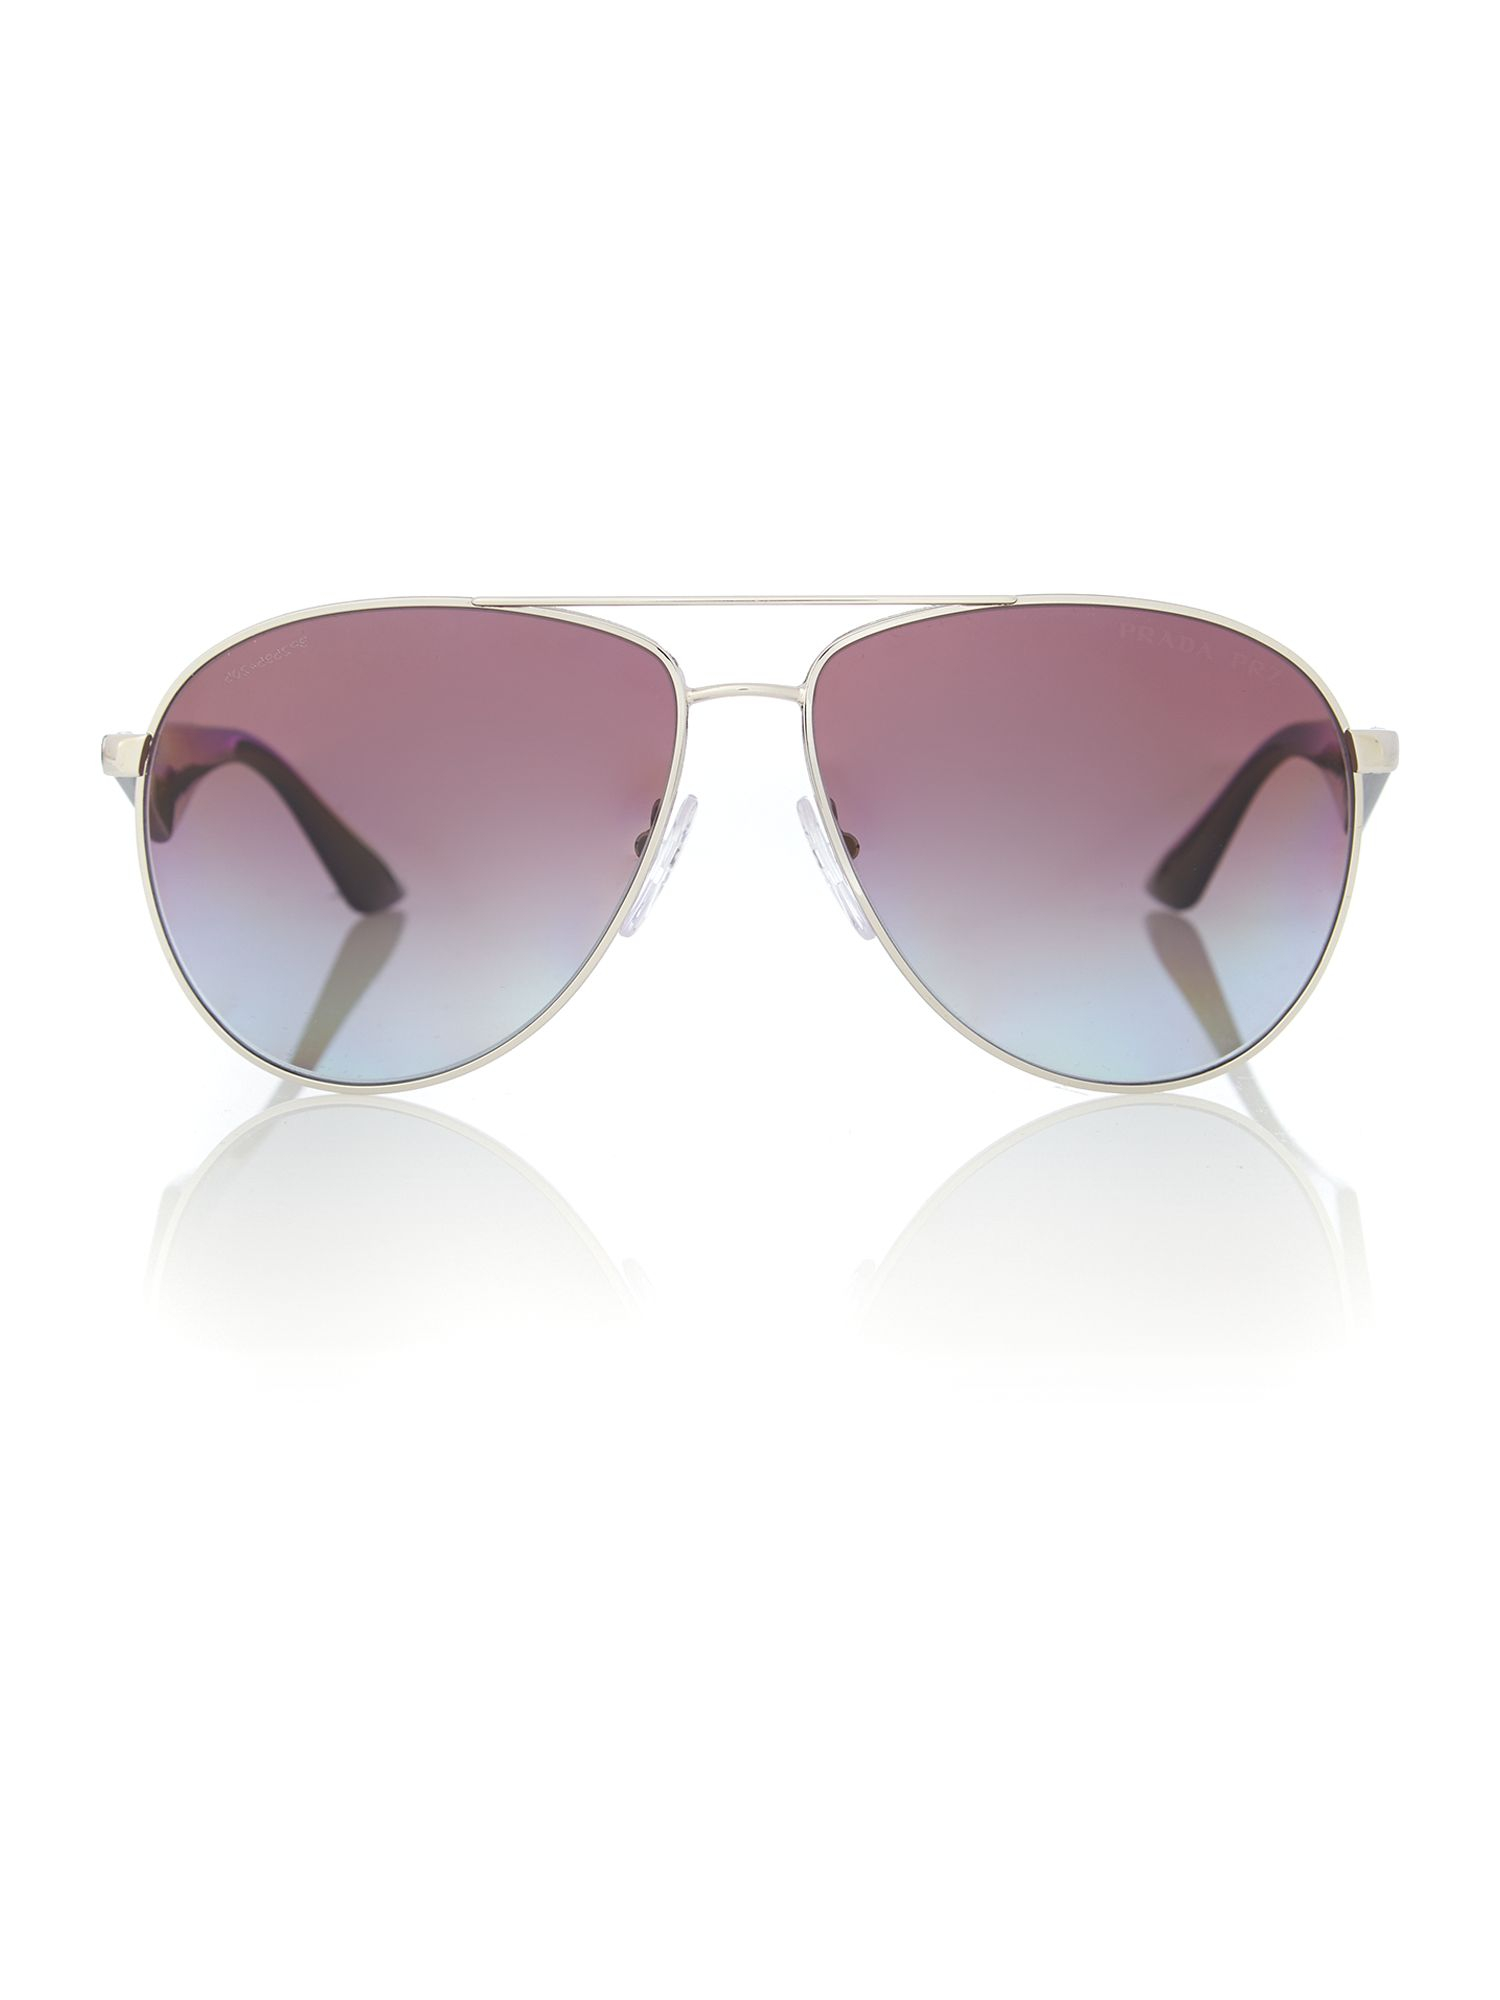 purple prada sunglasses for women, prada pink wallet